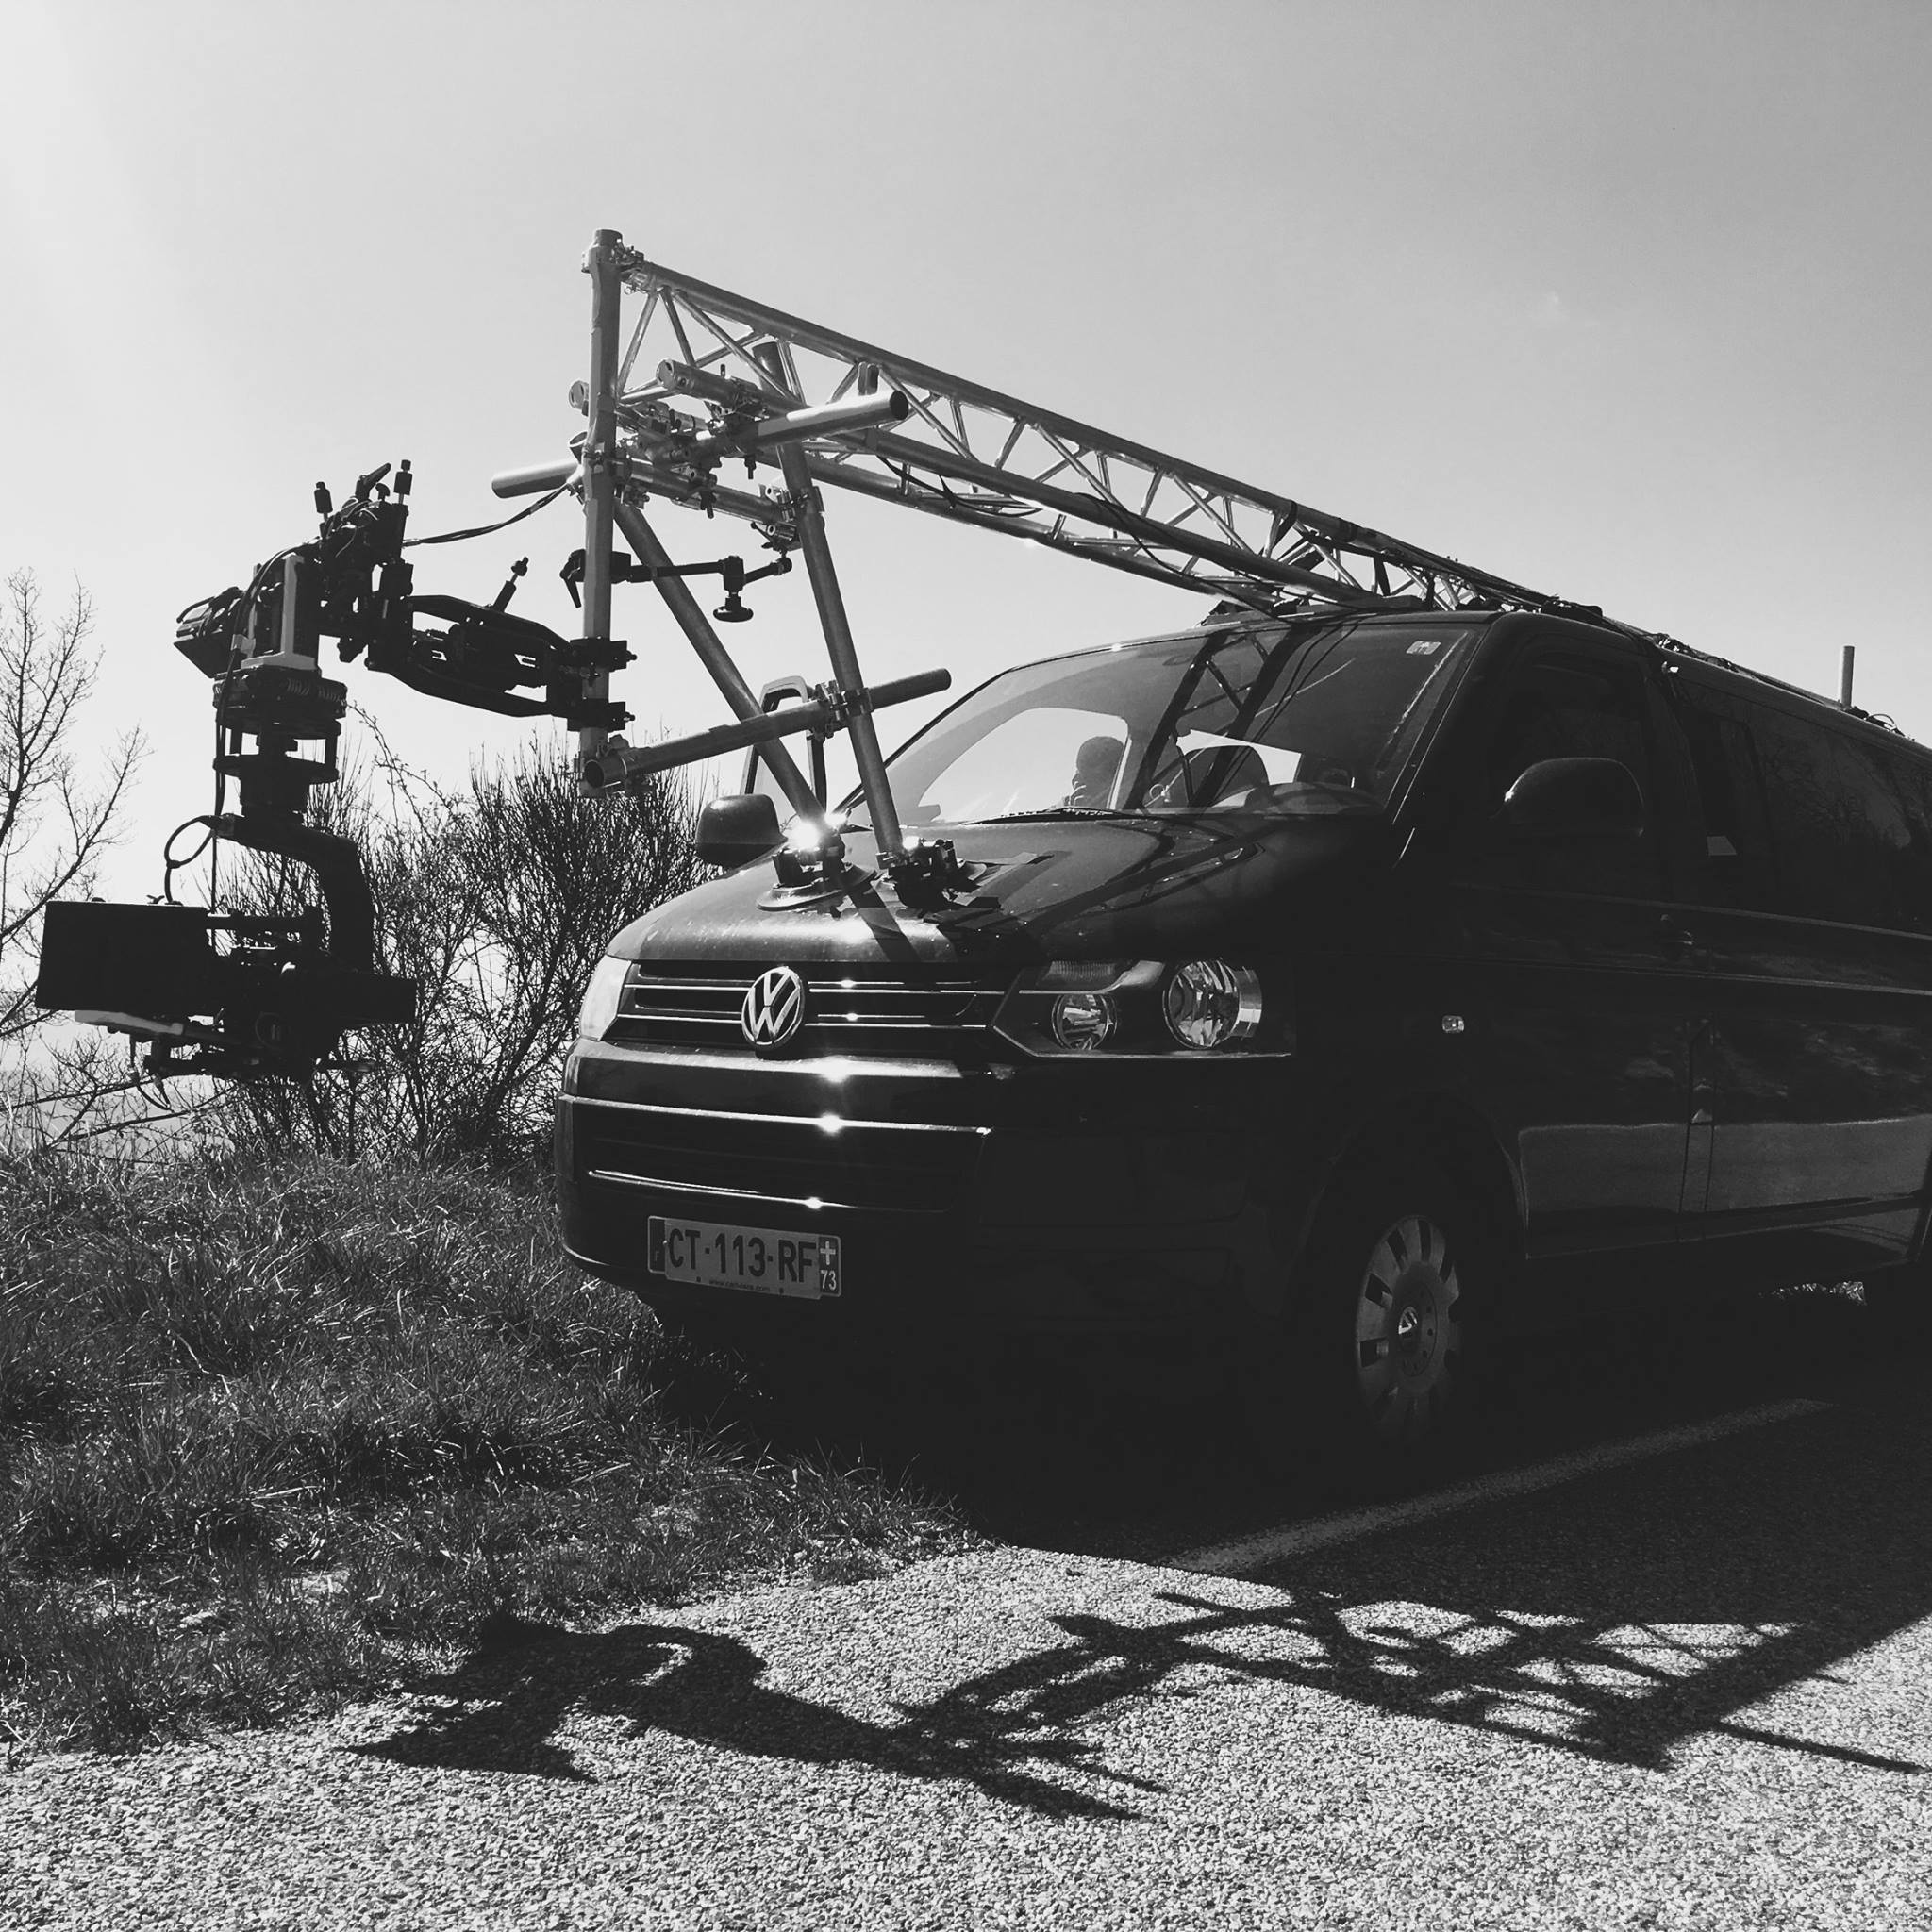 Front rigged Alexa Mini with a Canon 17-120mm lens on a MARNY head with a FlowCine Black Arm. We called it the Mad Max Rig. photo: Cyril Muscat